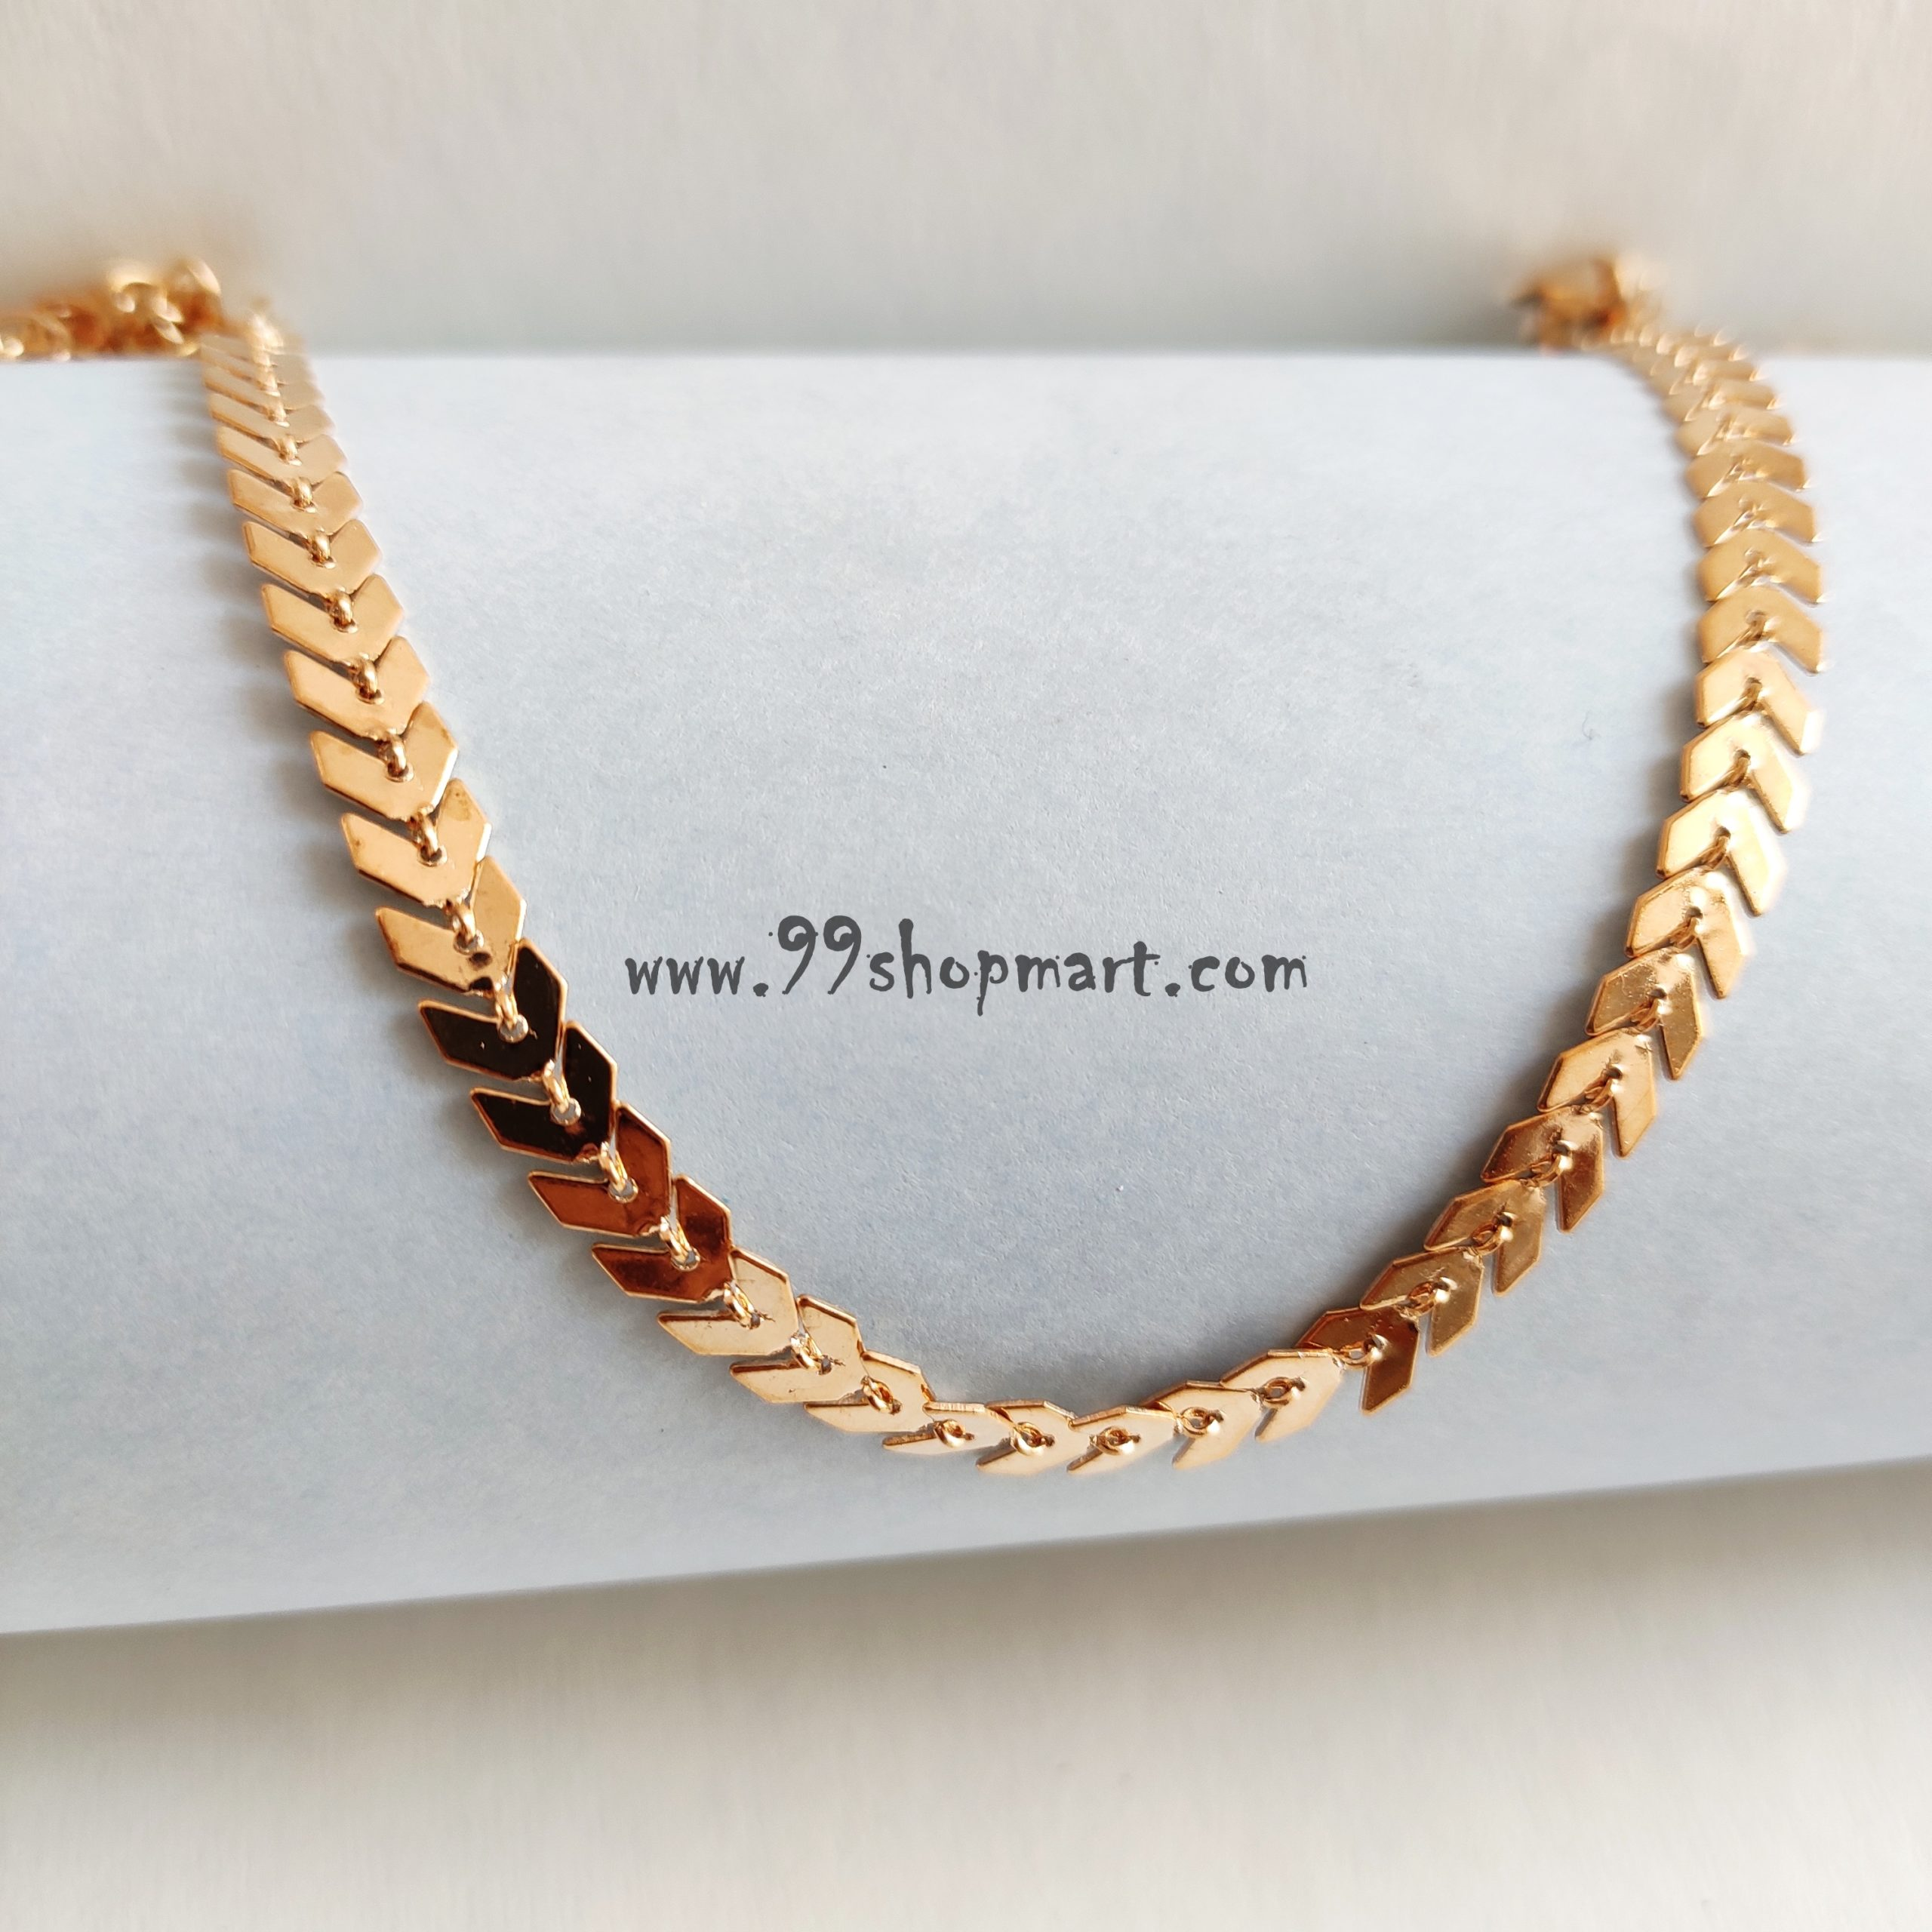 buy fish bone golden multiple arrows clavicle chain short chevron necklace for women girls fashion exquisite jewelry 99shopmart 99SWNC02